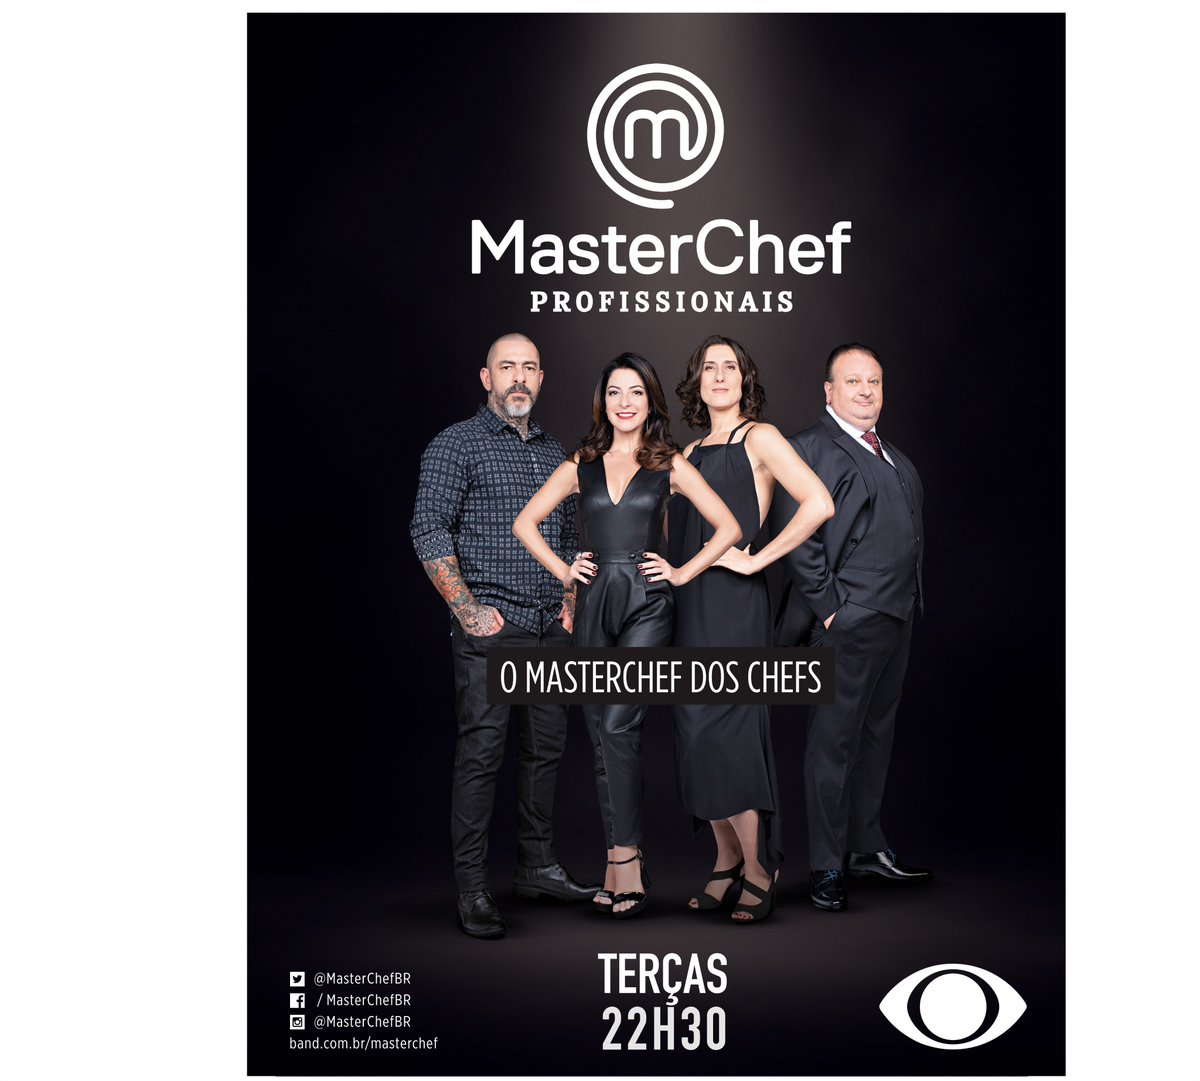 #MasterChefBR Latest News Trends Updates Images - masterchefbr